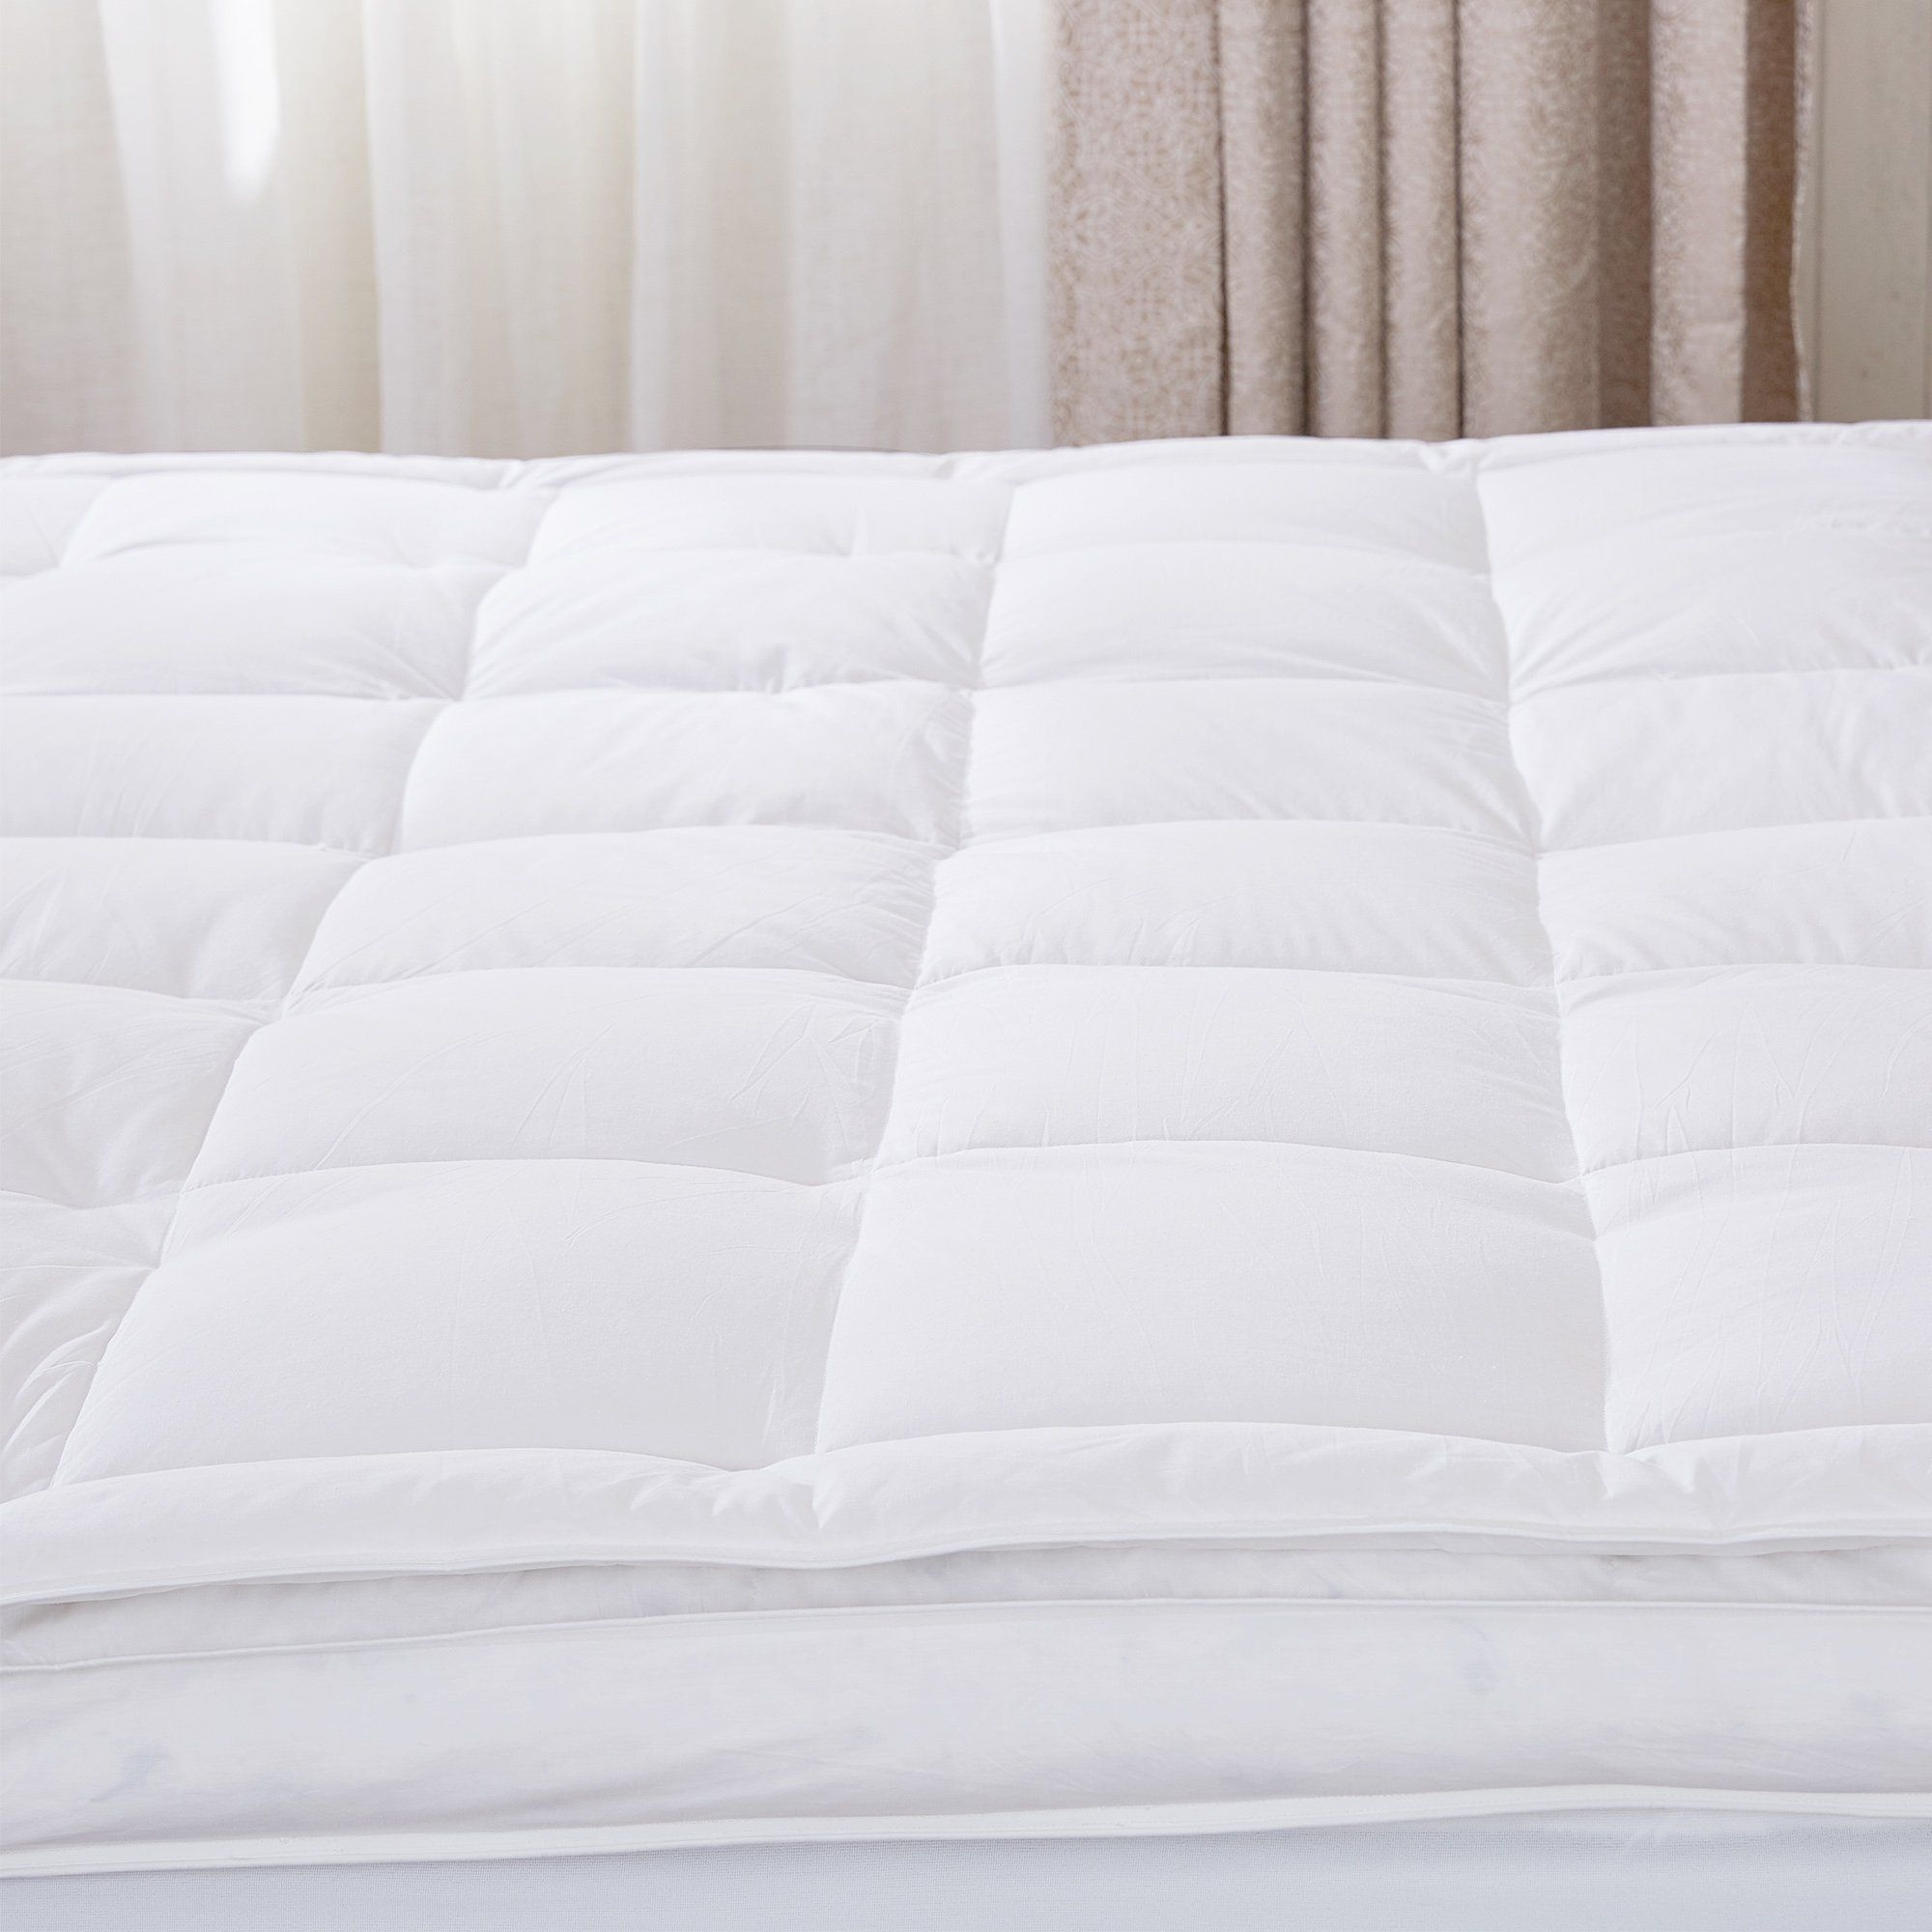 Goose Feather Mattress Topper Feather Bed Feather Mattress Bed Sizes Mattress Topper